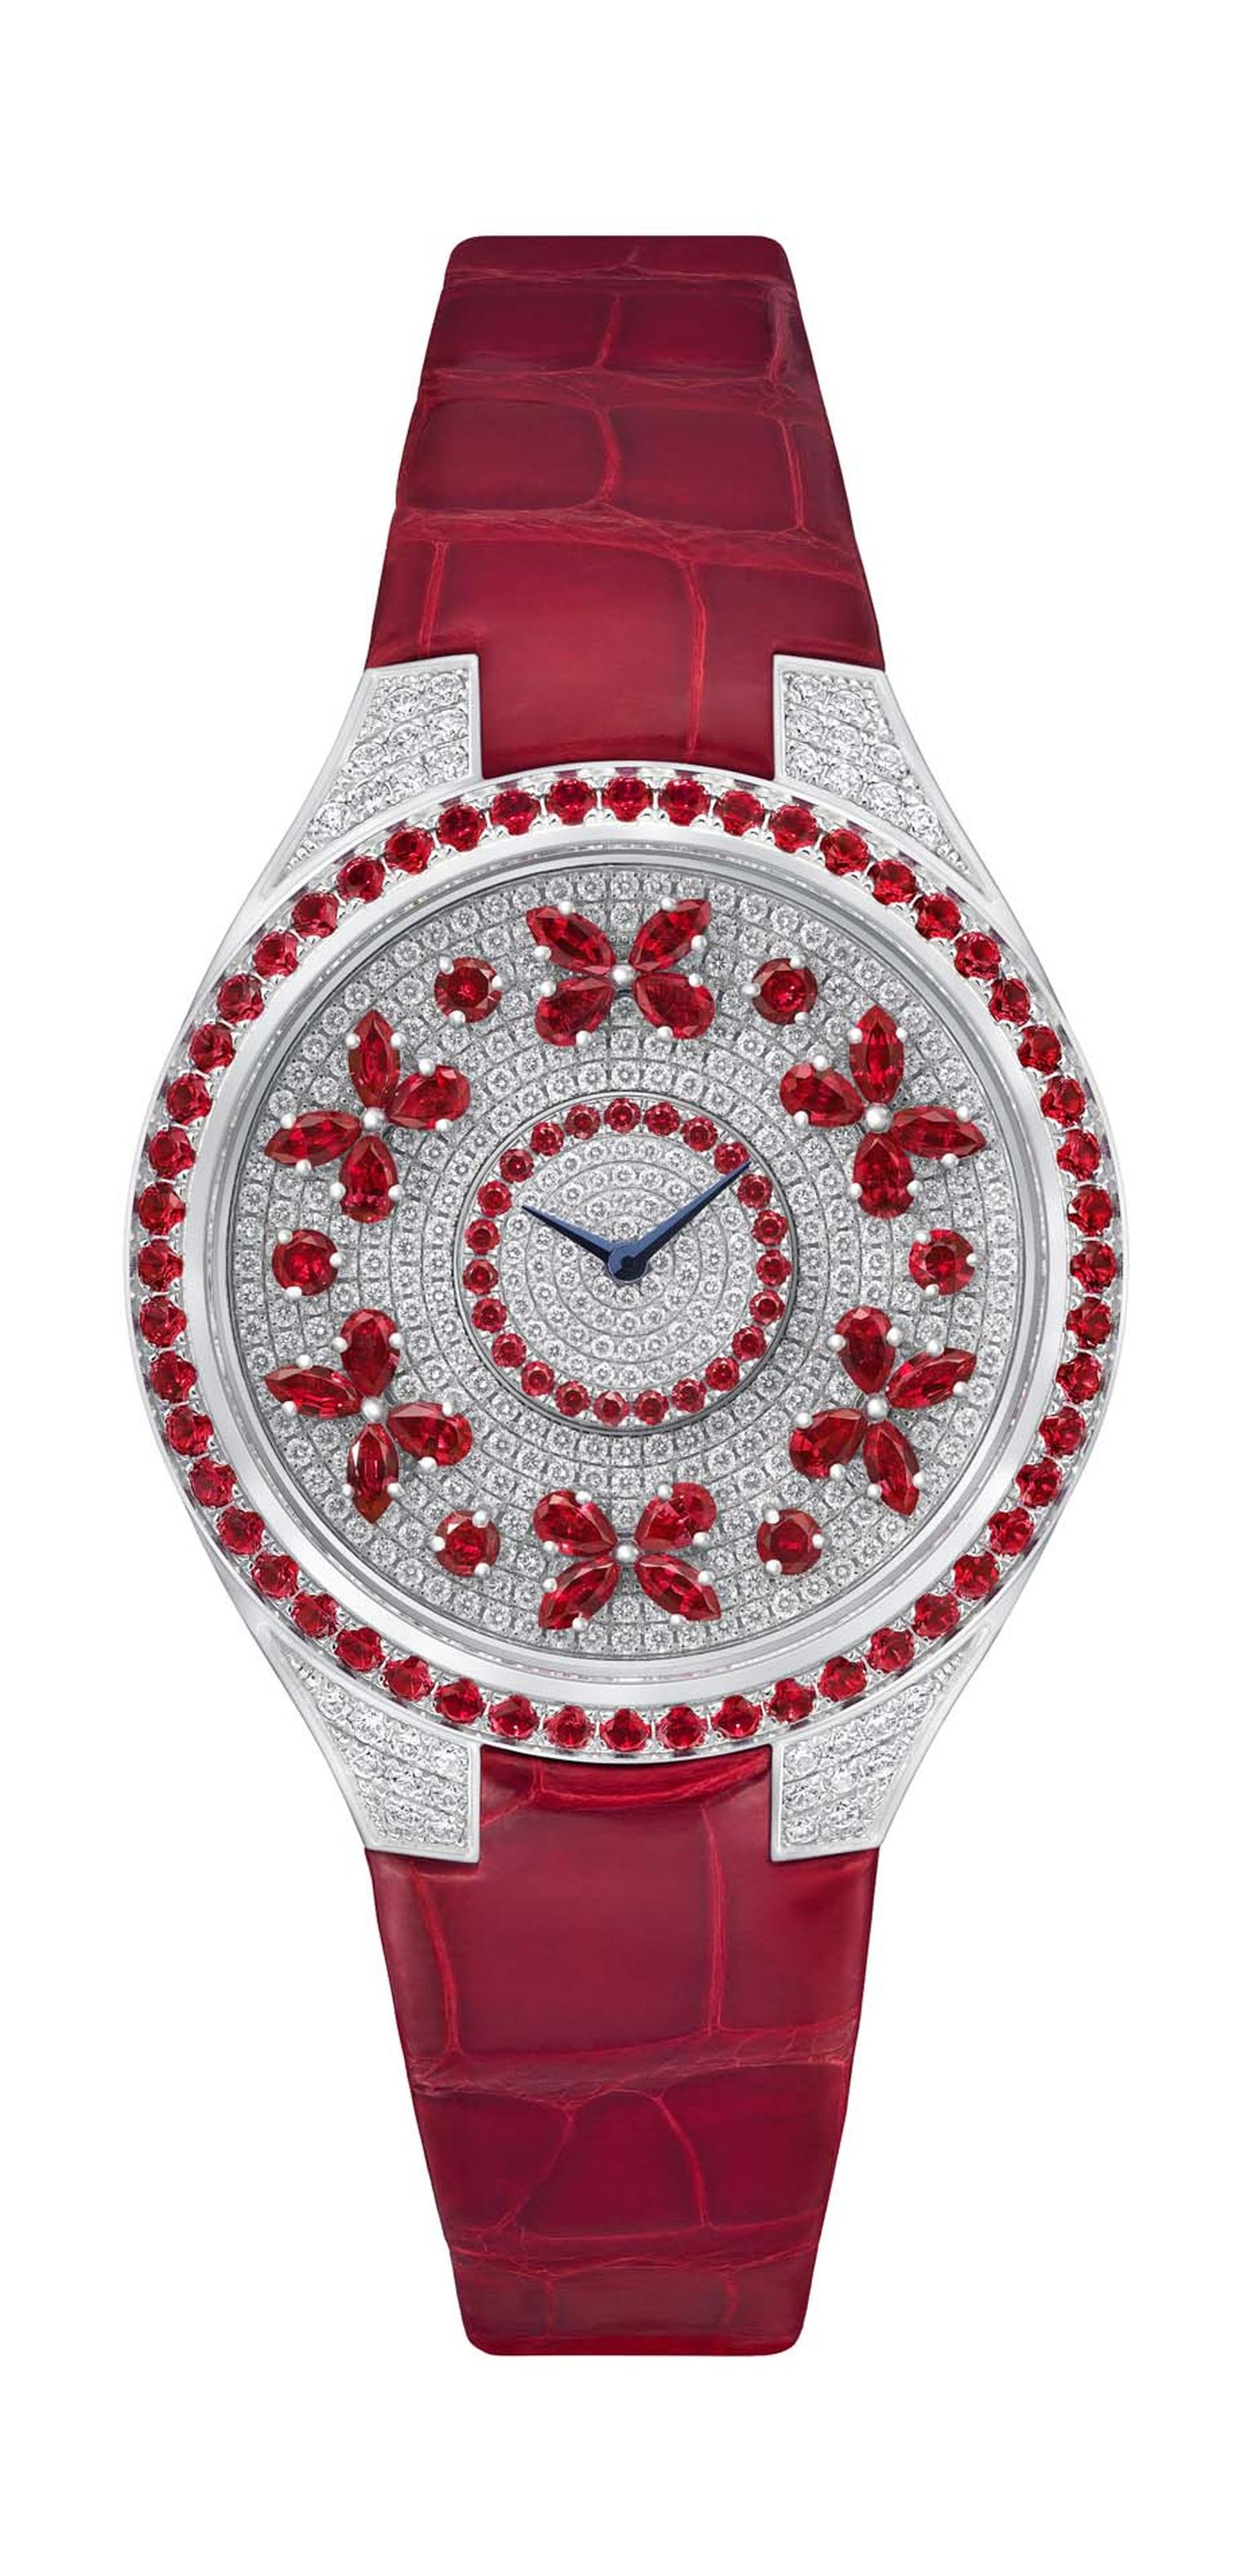 The new Disco Butterfly collection of Graff watches includes this model set with rubies and diamonds on a red crocodile strap - a colourful companion that sets the butterflies spinning in time with your wrist.